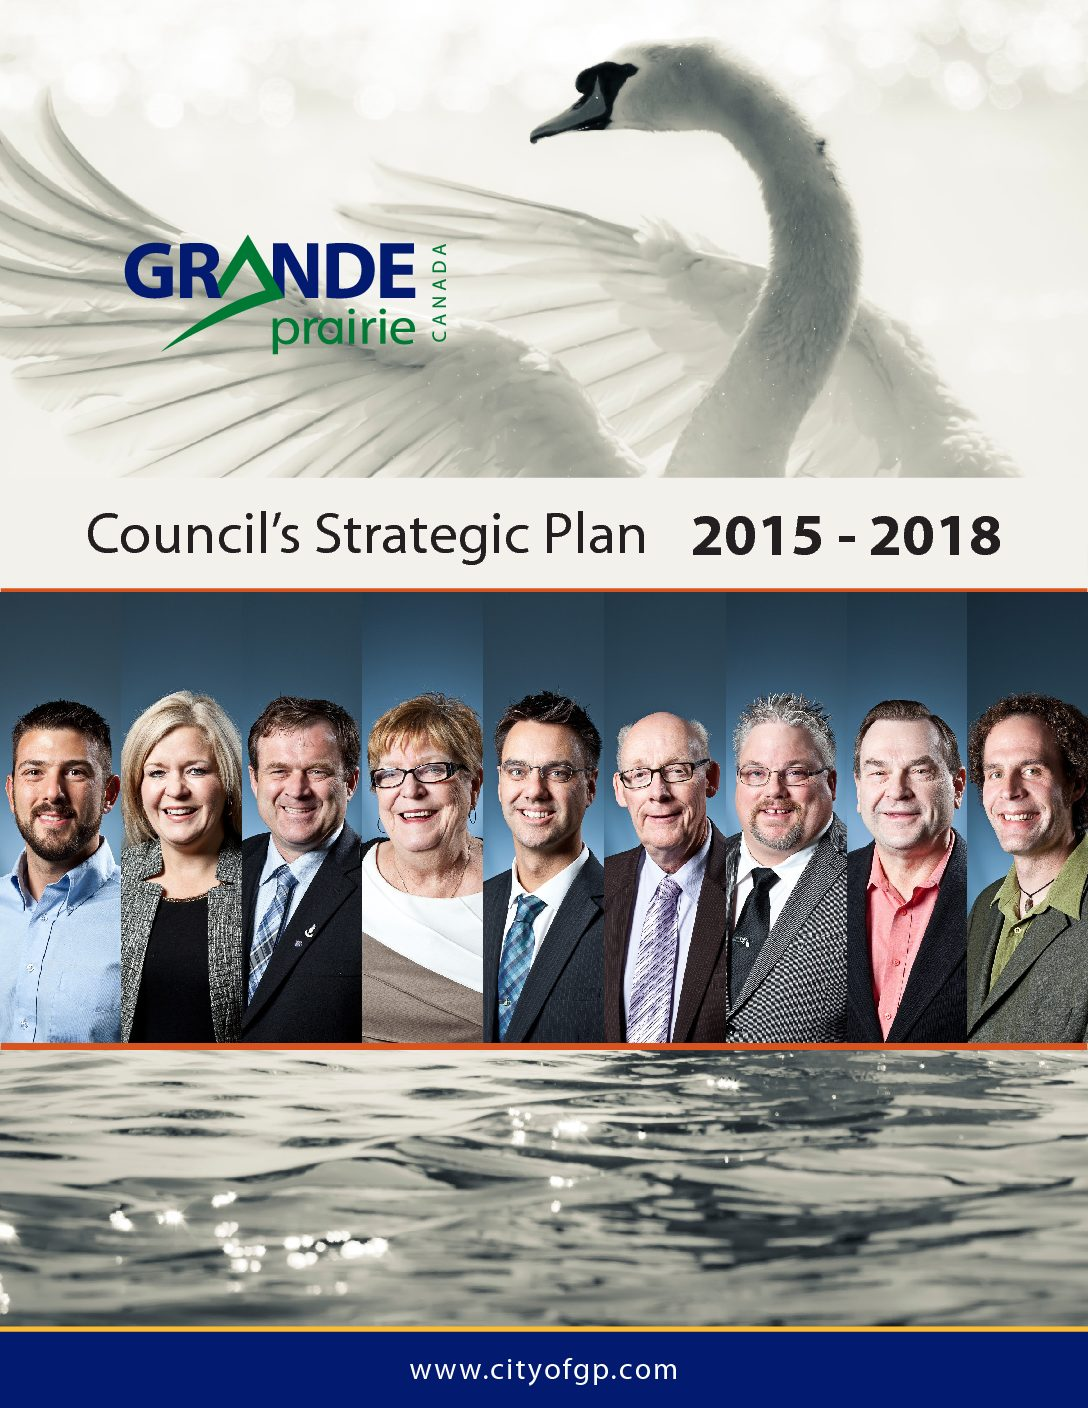 Grande Prairie – Council's 2015-2018 Strategic Plan